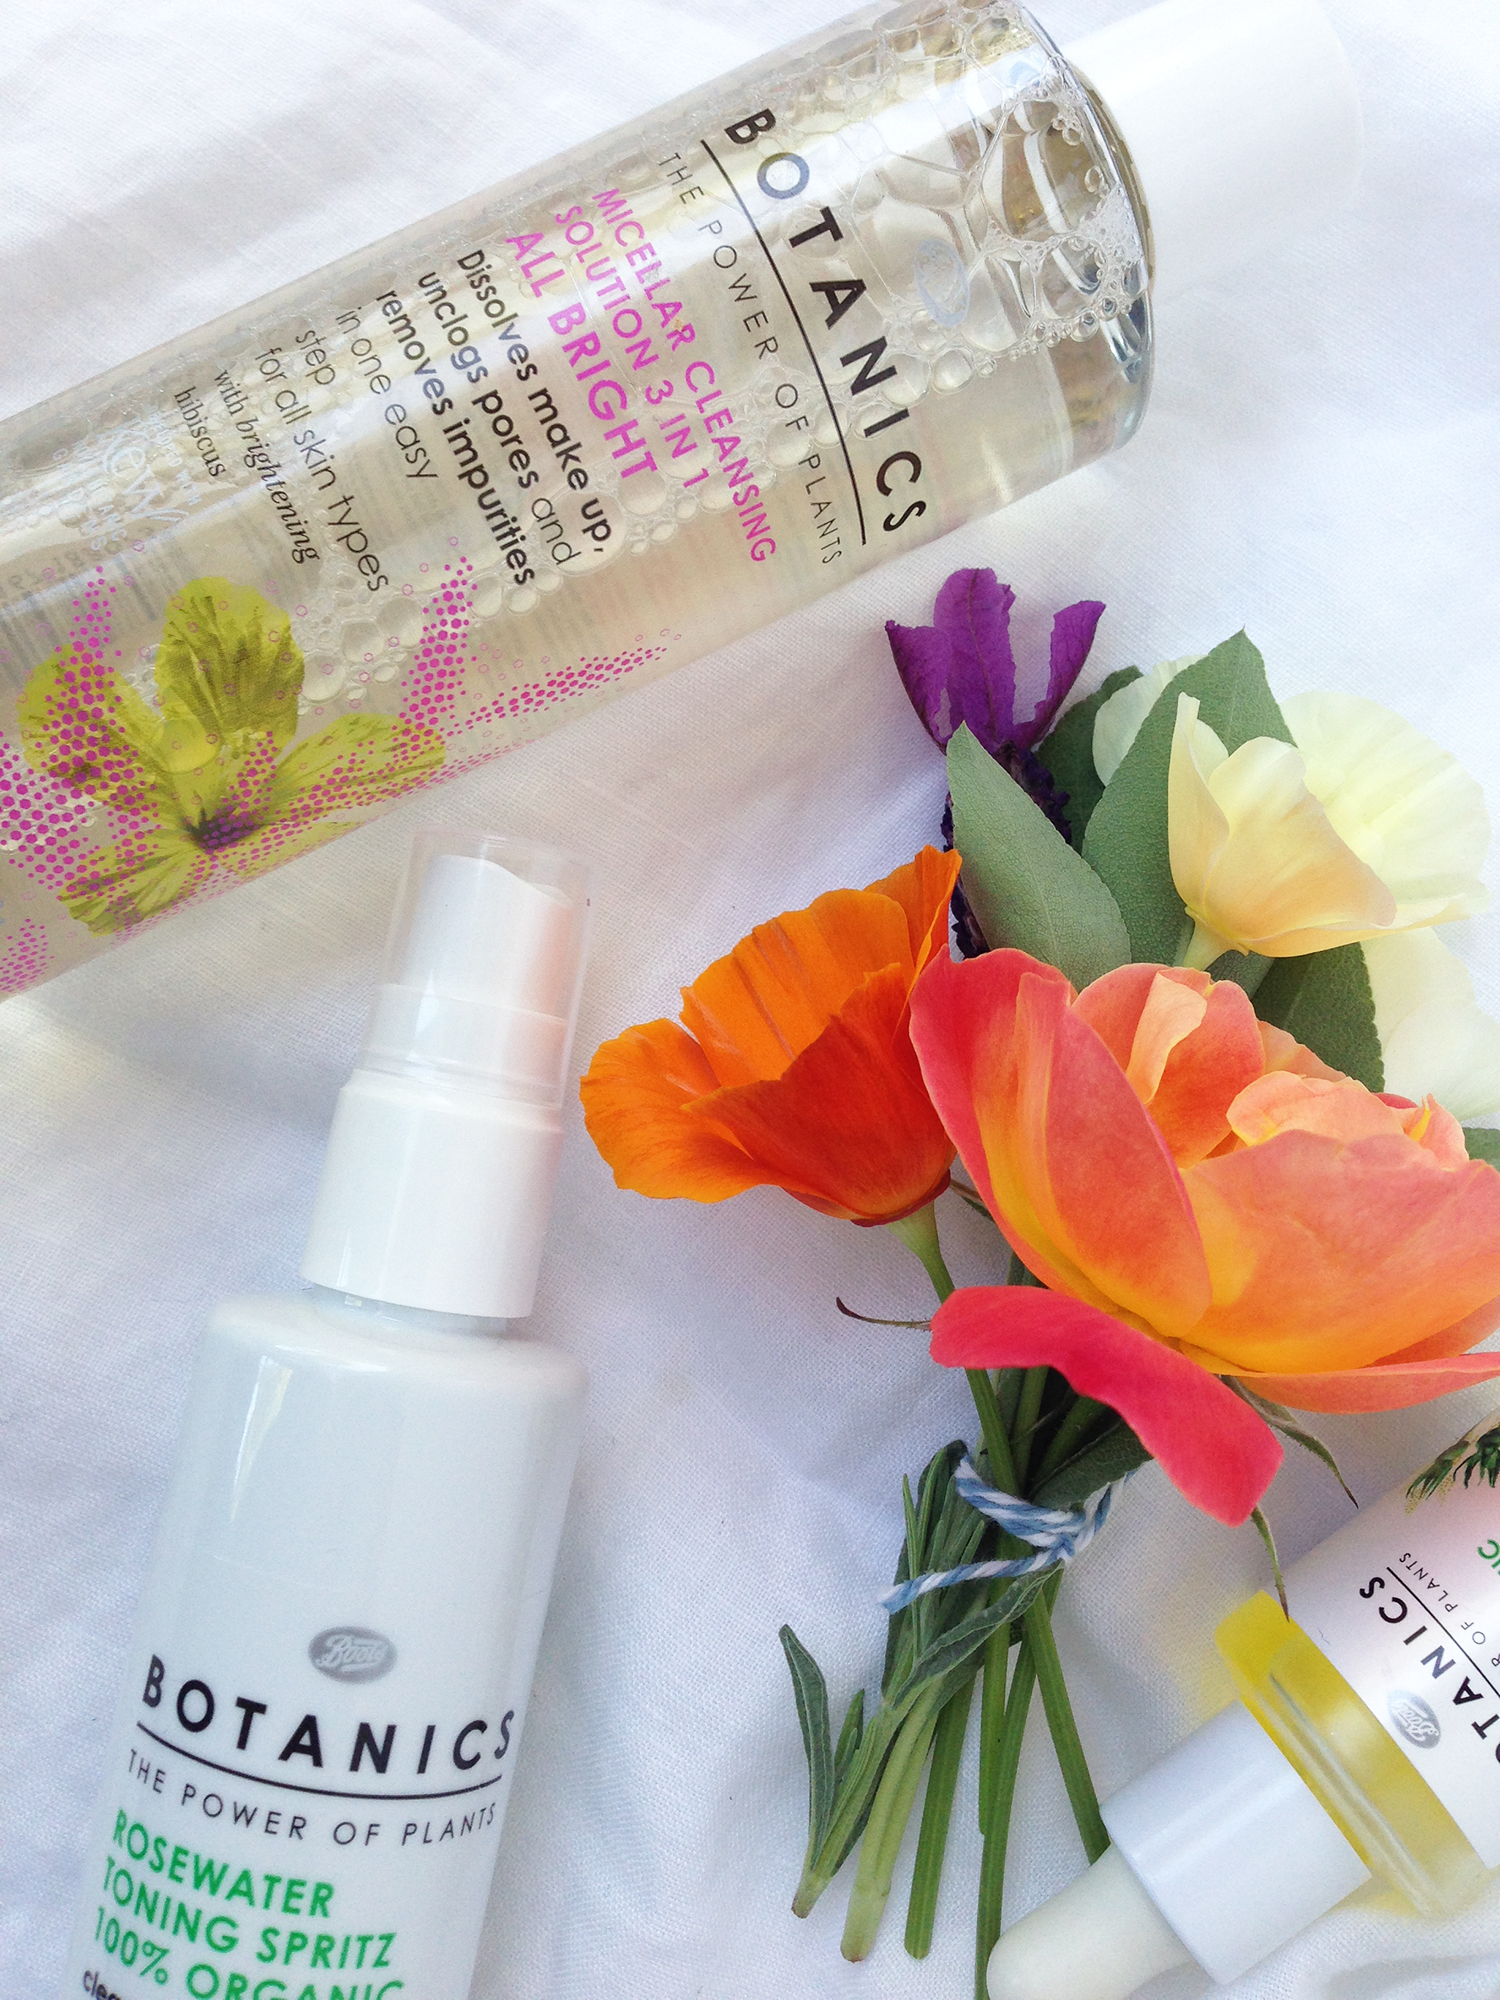 Boots Botanics. Good Stuff For Cleaning Delicate Skin. Target!